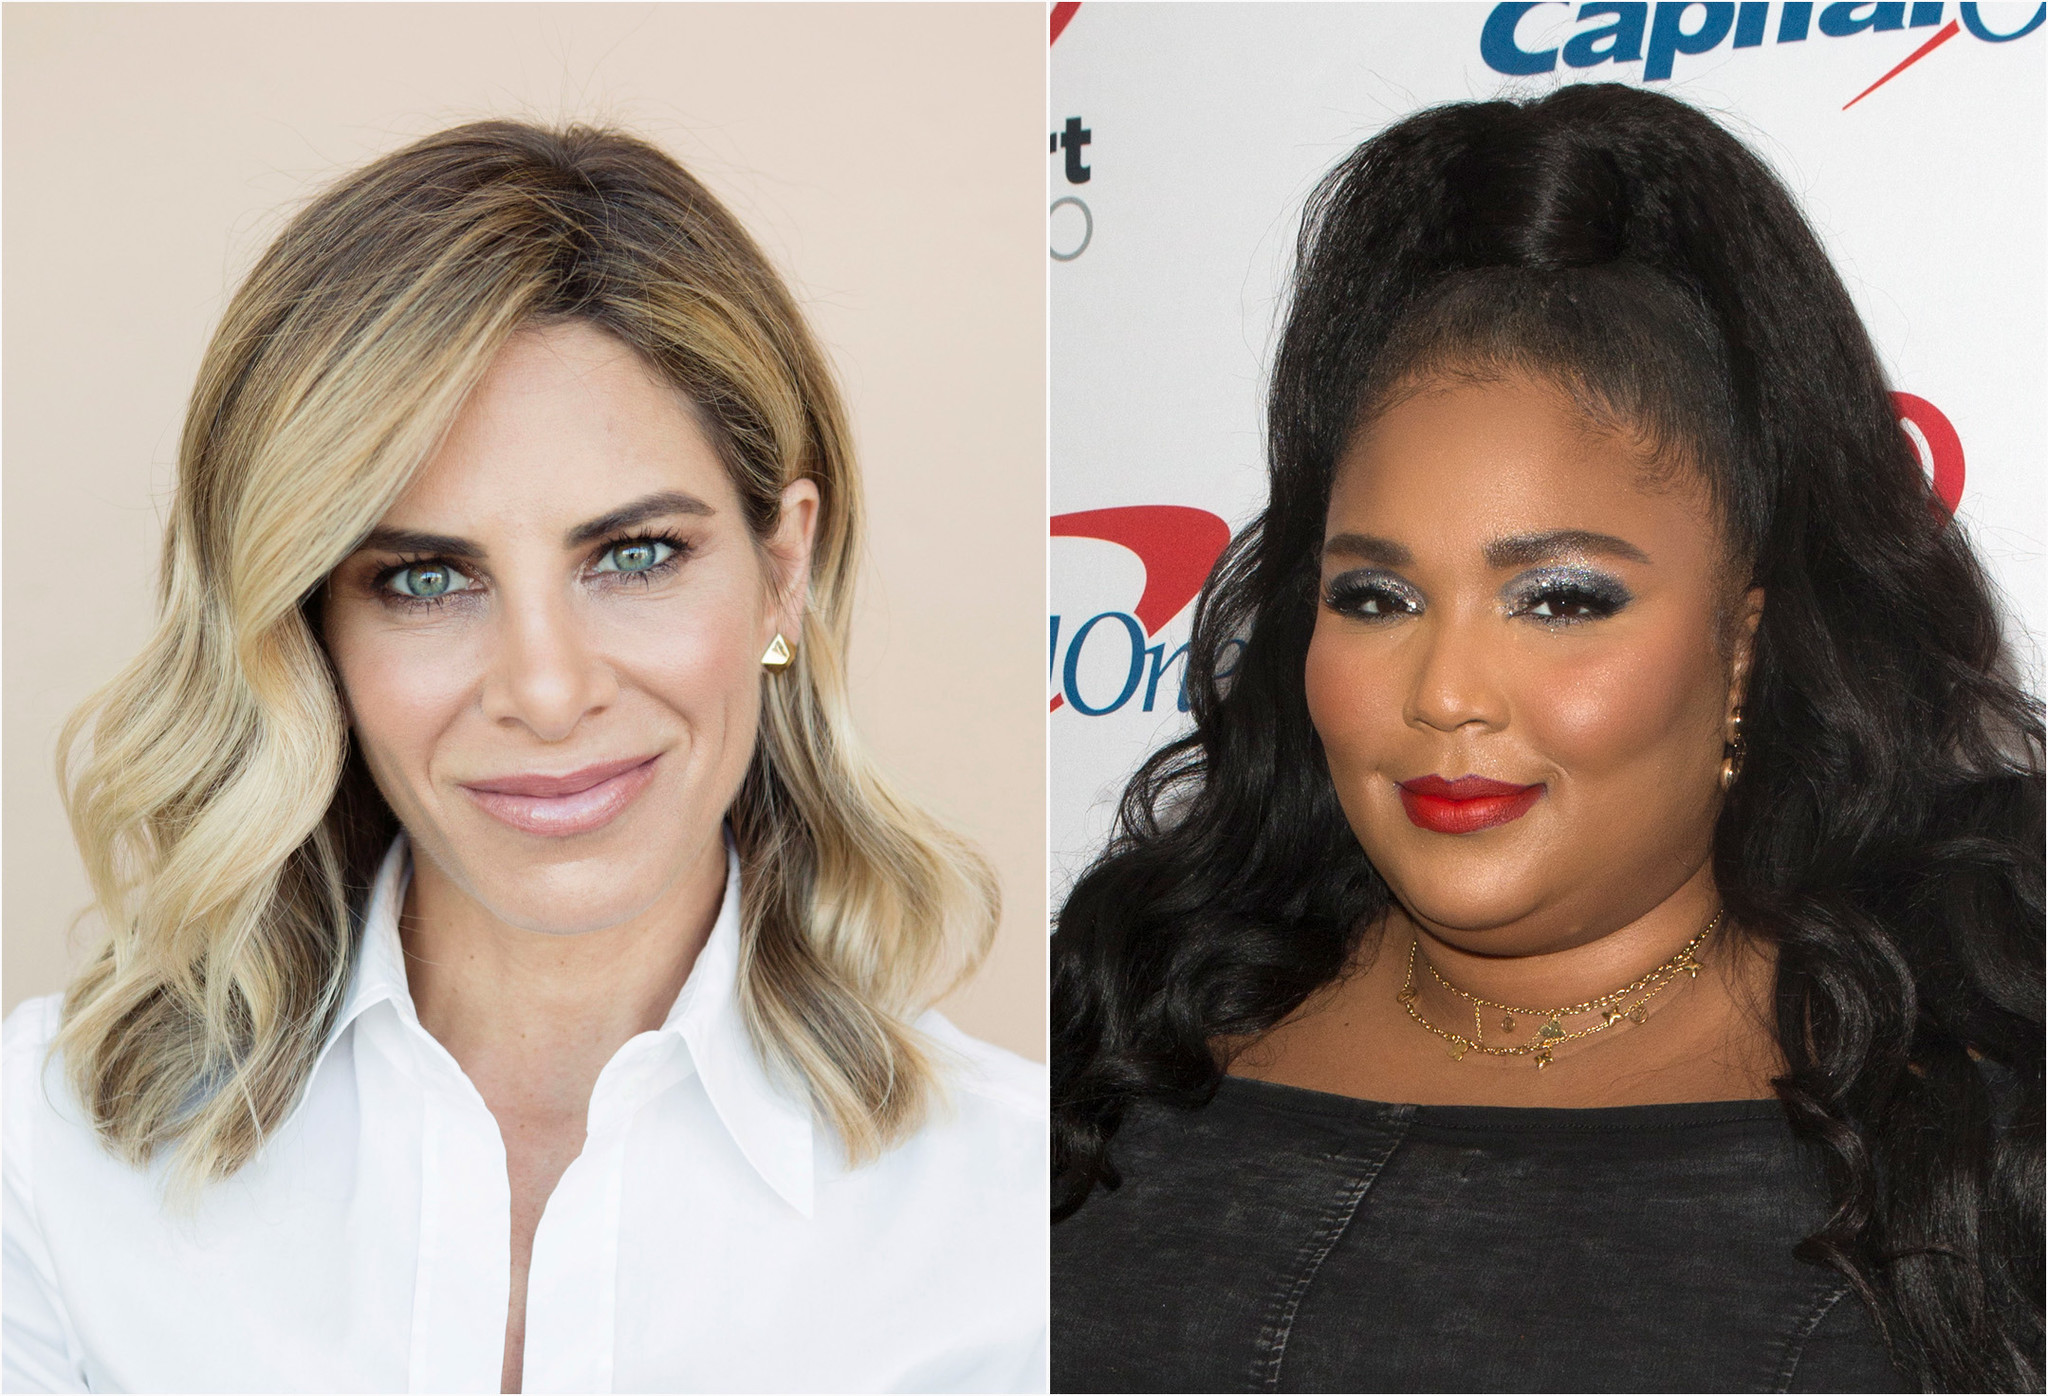 Gold-lamé clad Lizzo sizzles in response to trainer Jillian Michaels' allegedly body-shaming remarks